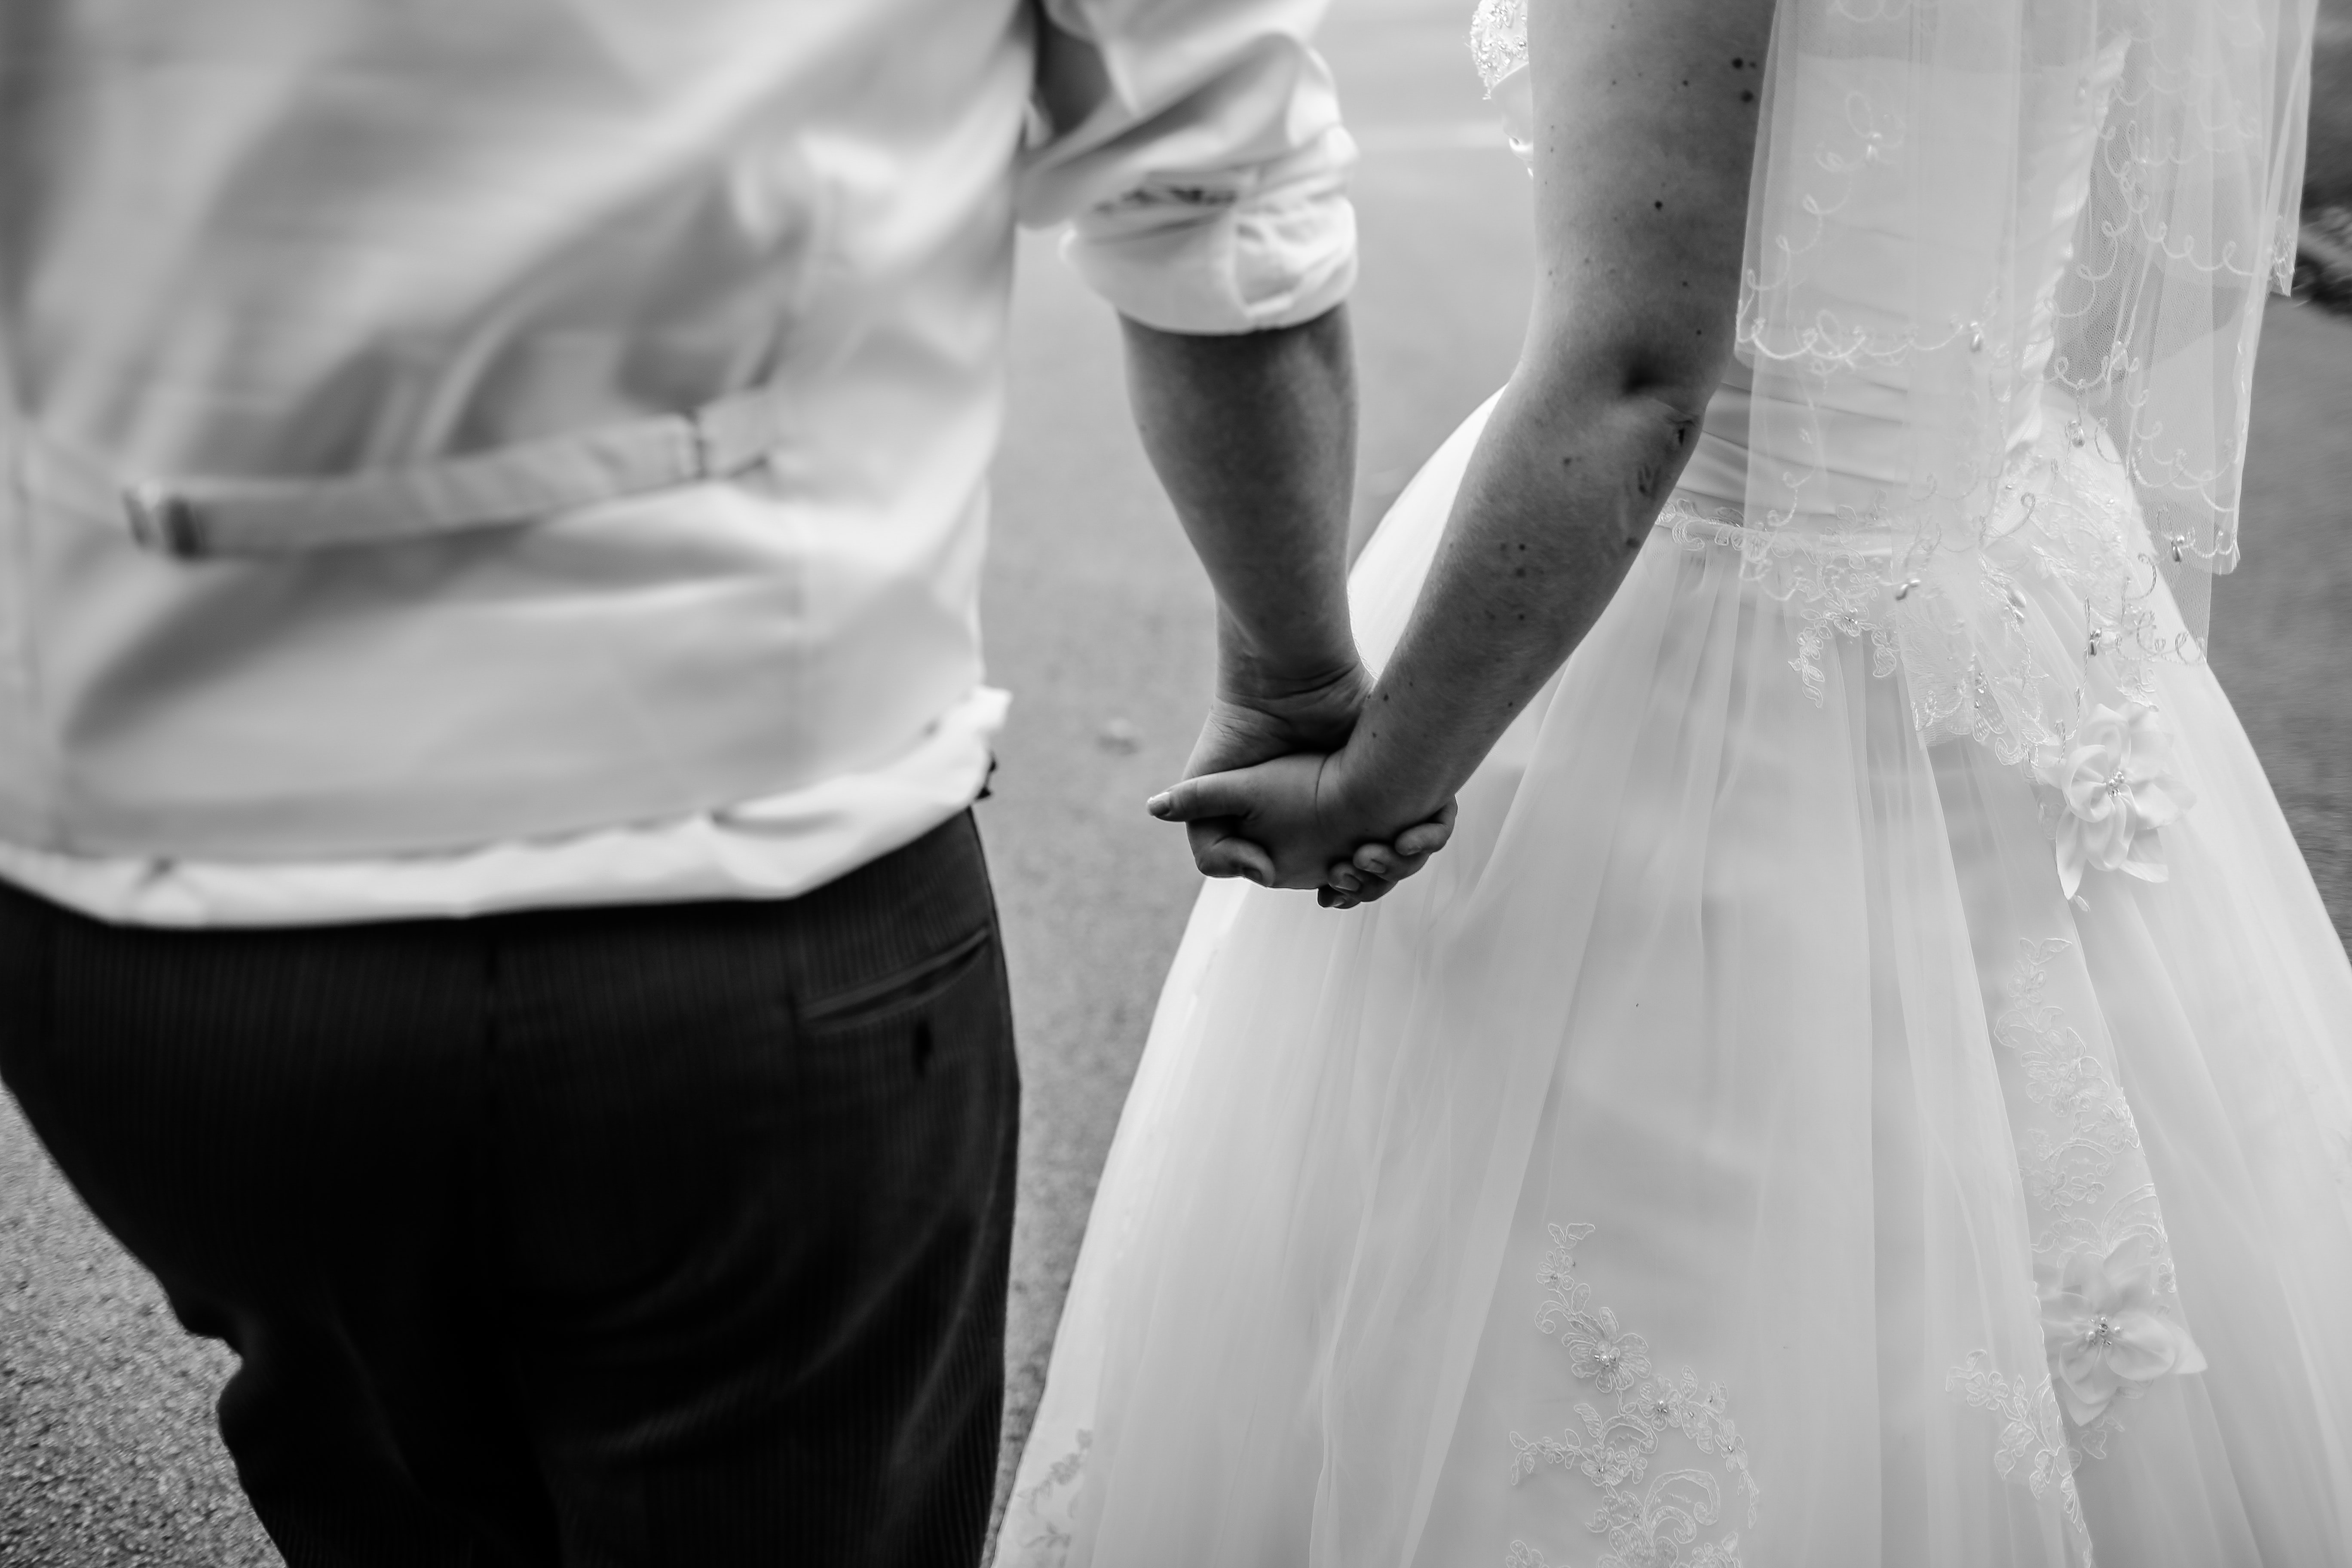 grayscale photo of wedded couple holding hands